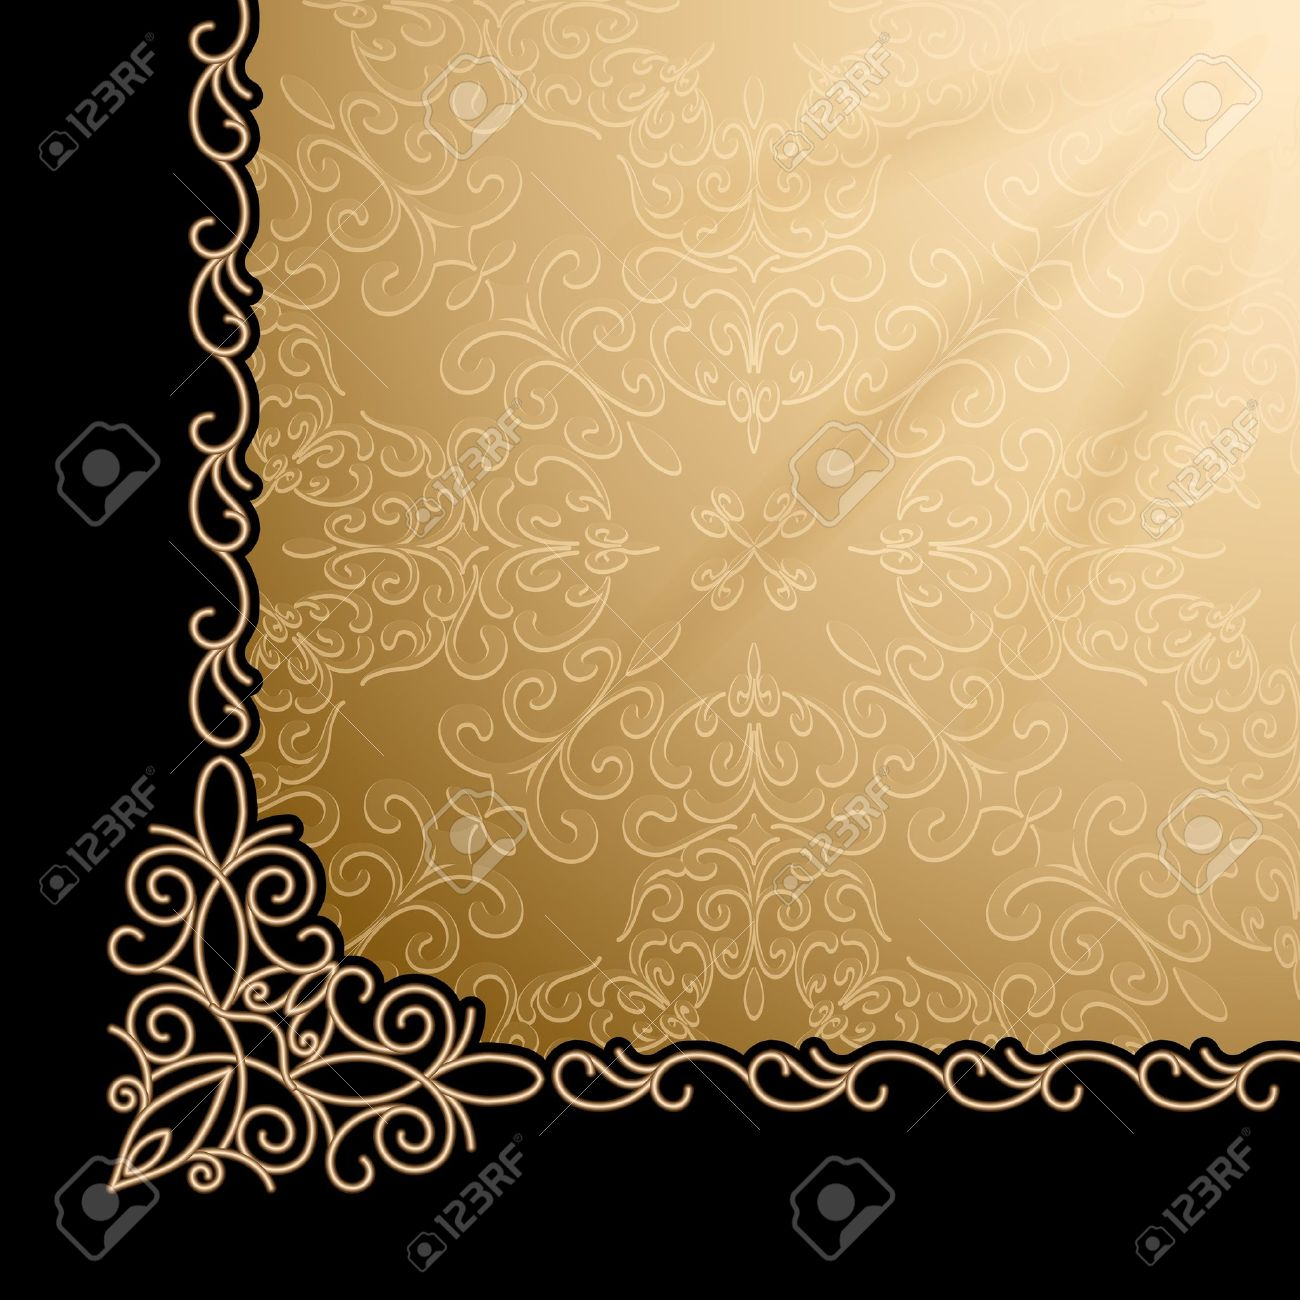 Vintage Gold Background Corner Design Element Royalty Free Cliparts